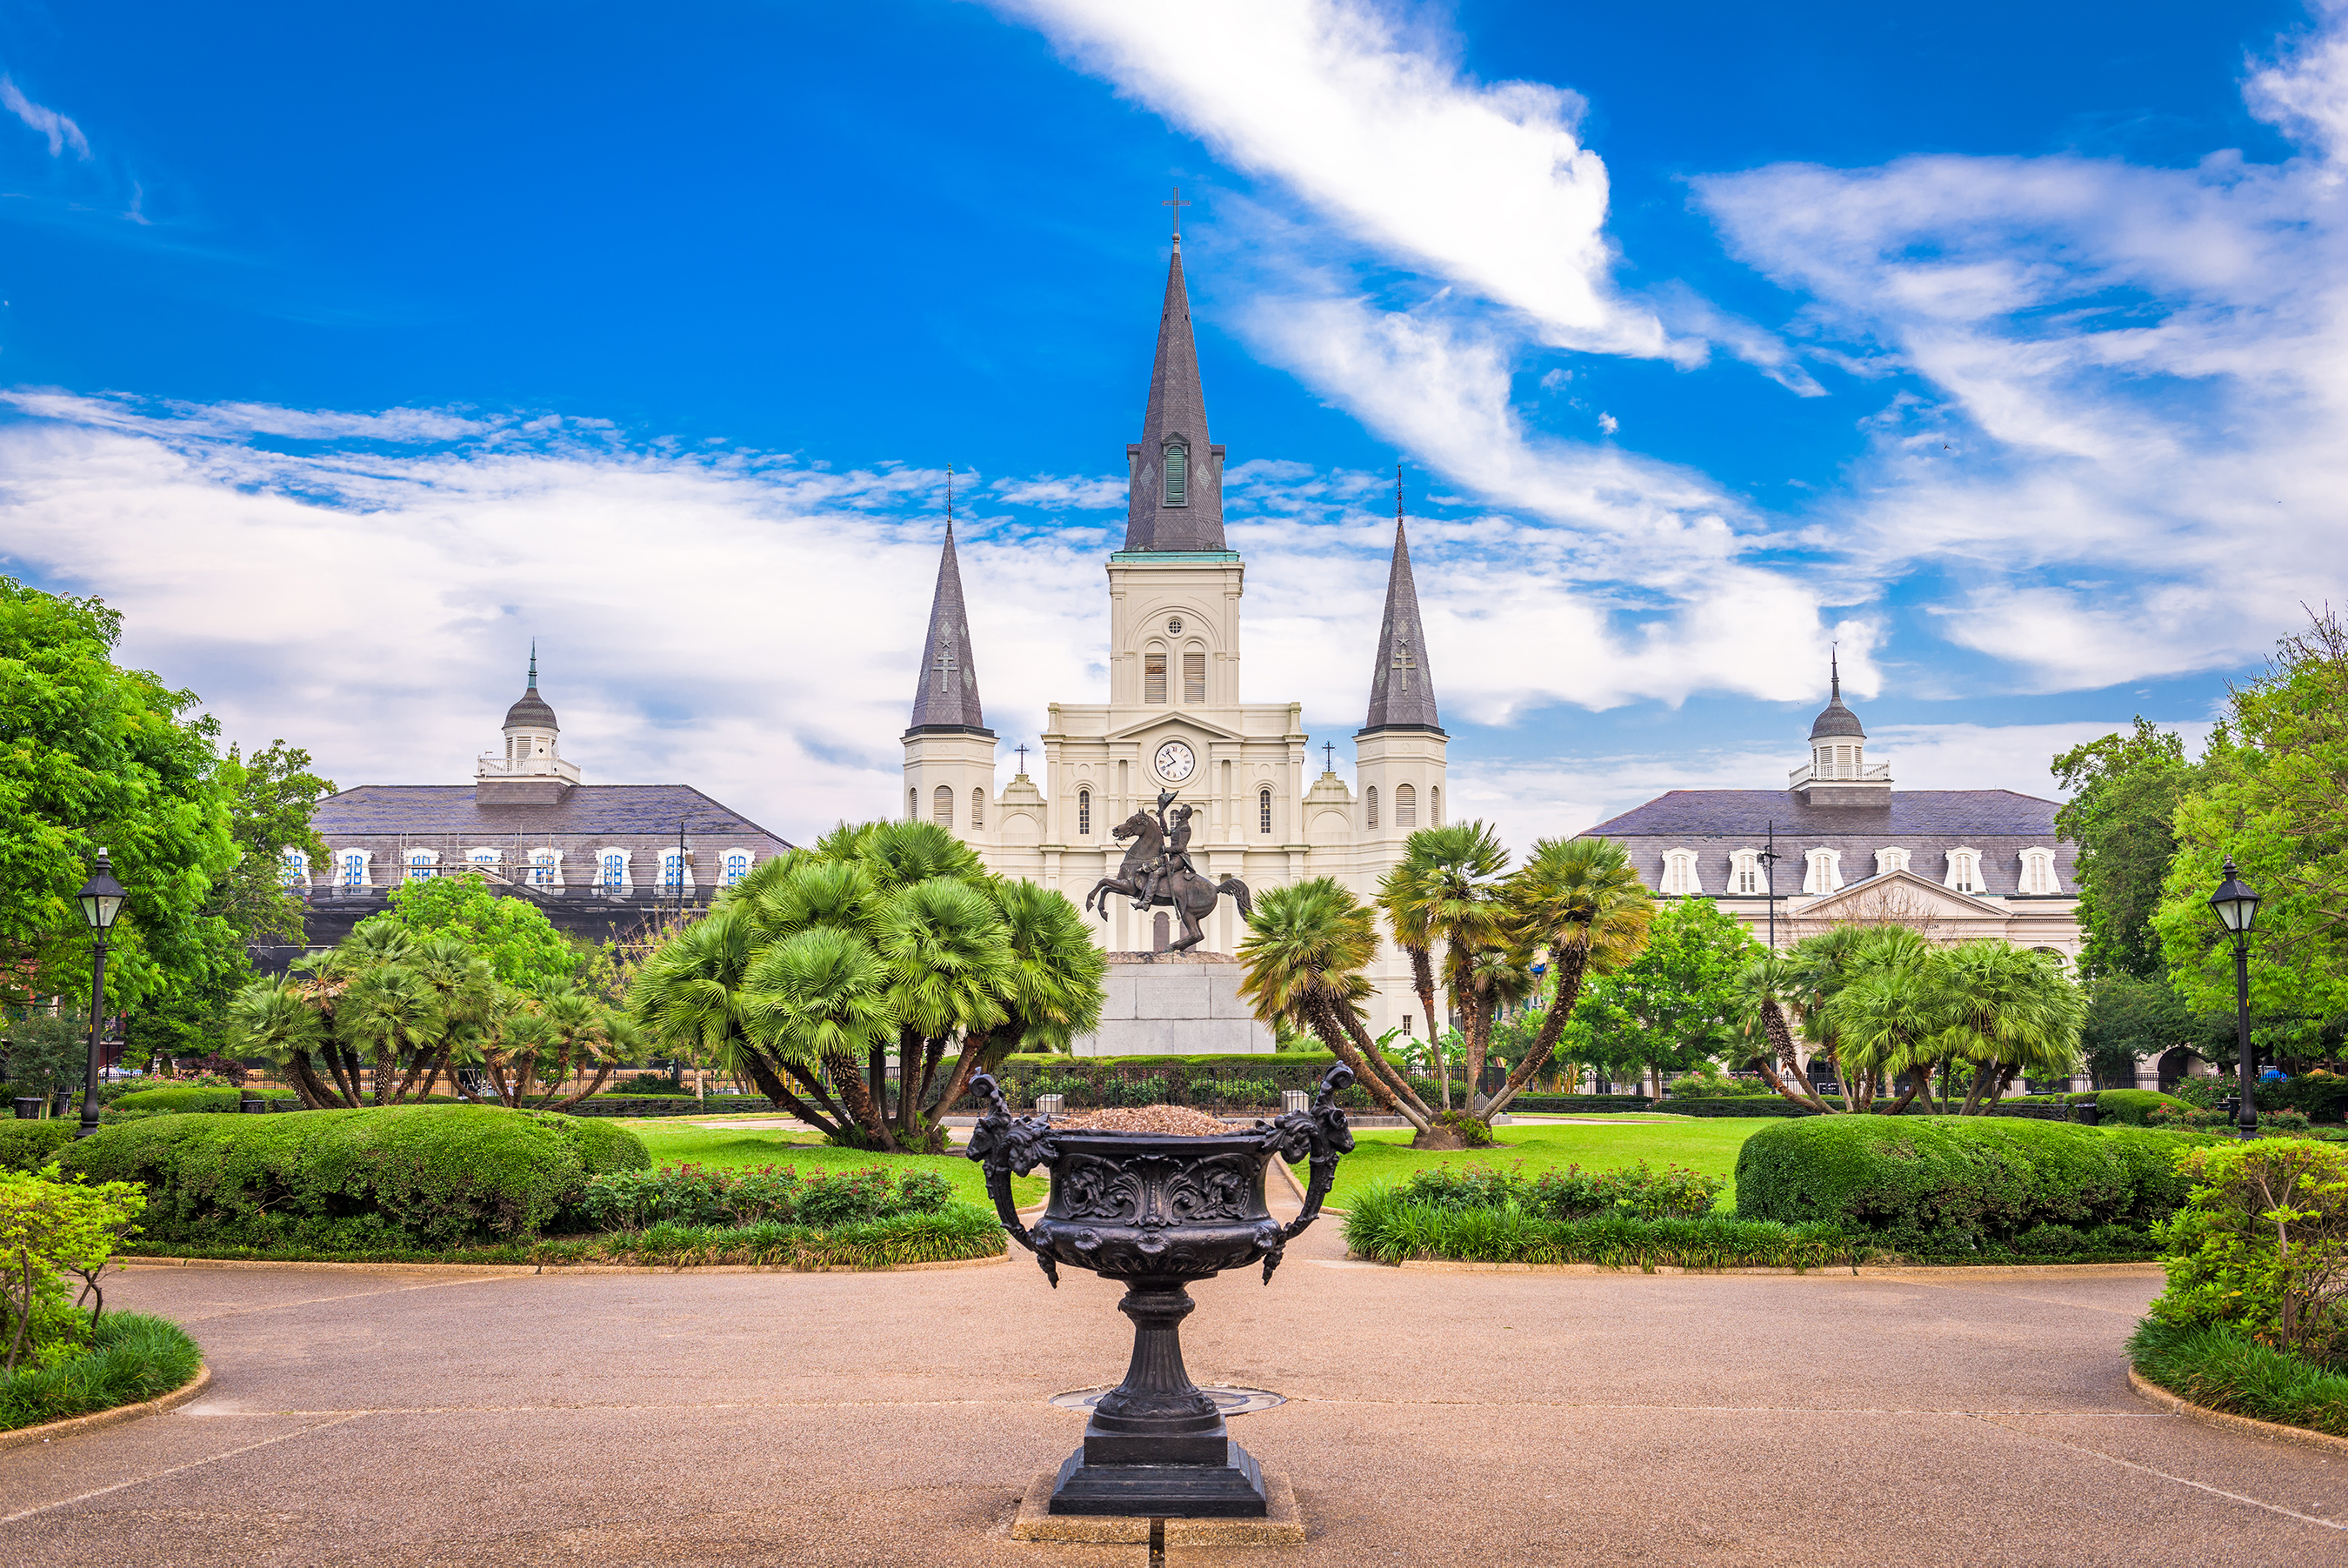 St. Louis Cathedral court yard located in New Orleans, LA